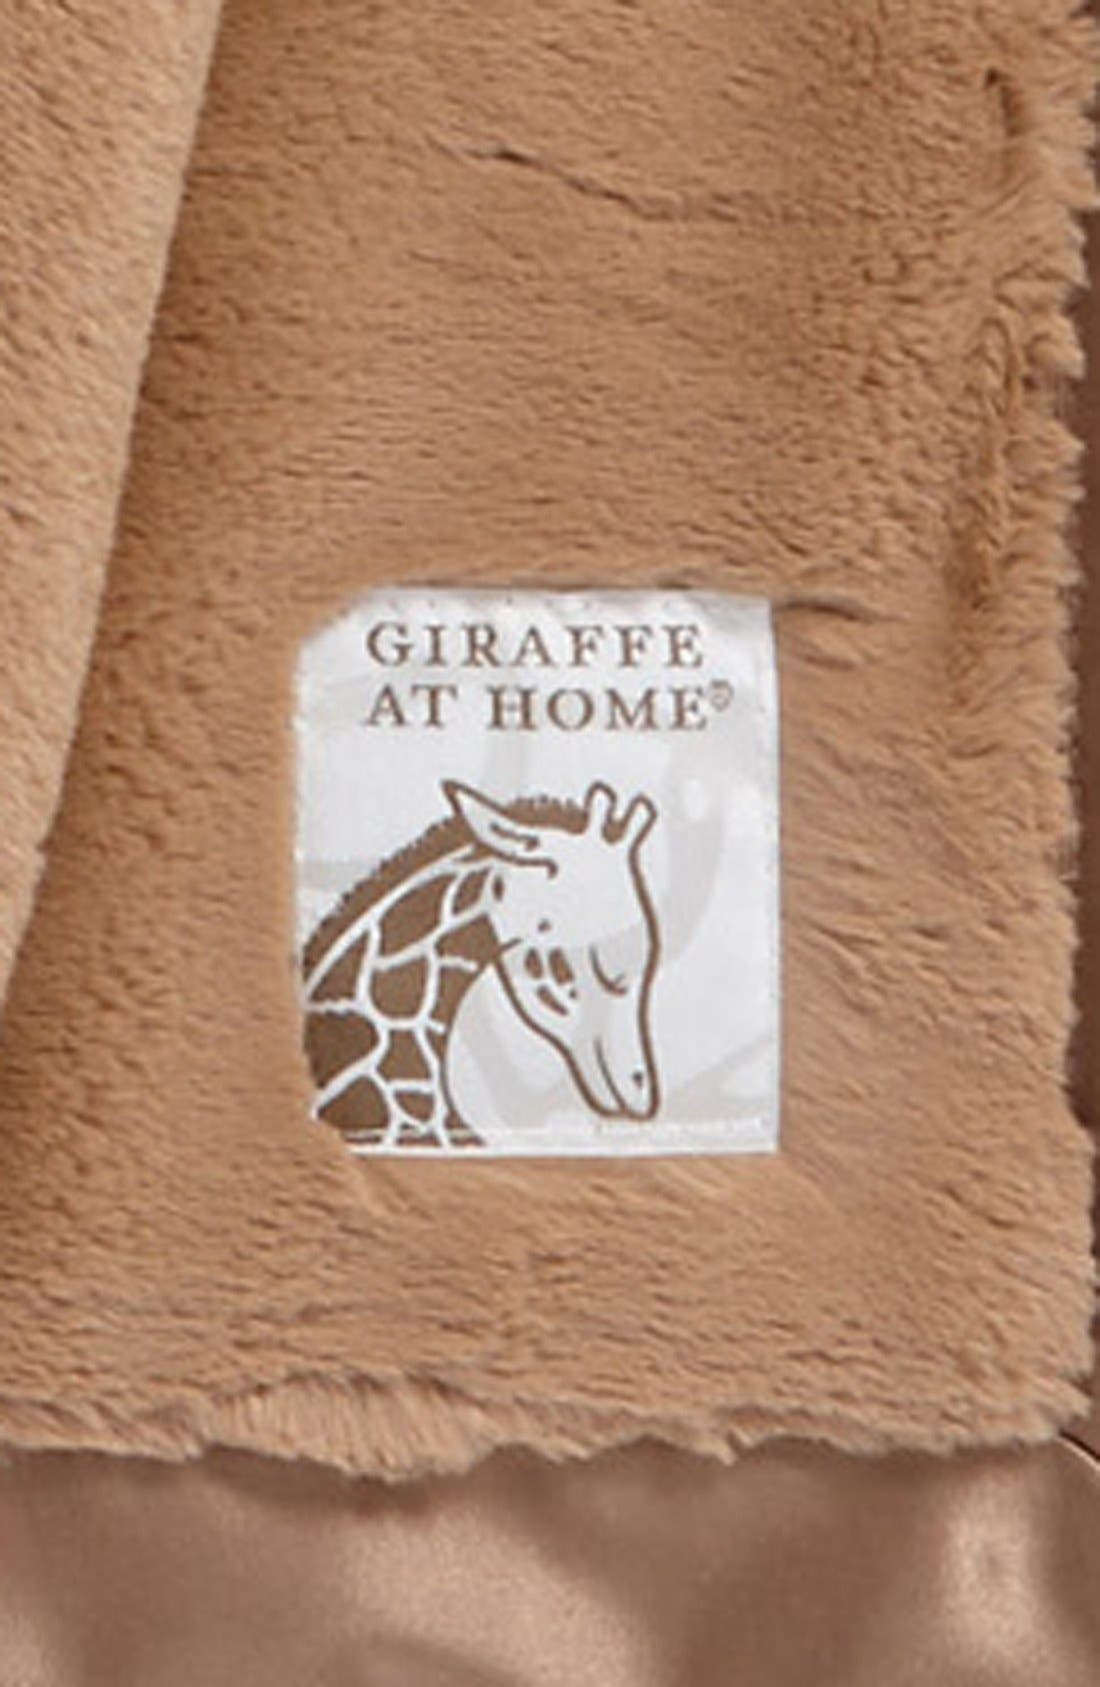 GIRAFFE AT HOME, Luxe<sup>™</sup> Throw, Alternate thumbnail 3, color, CHARCOAL